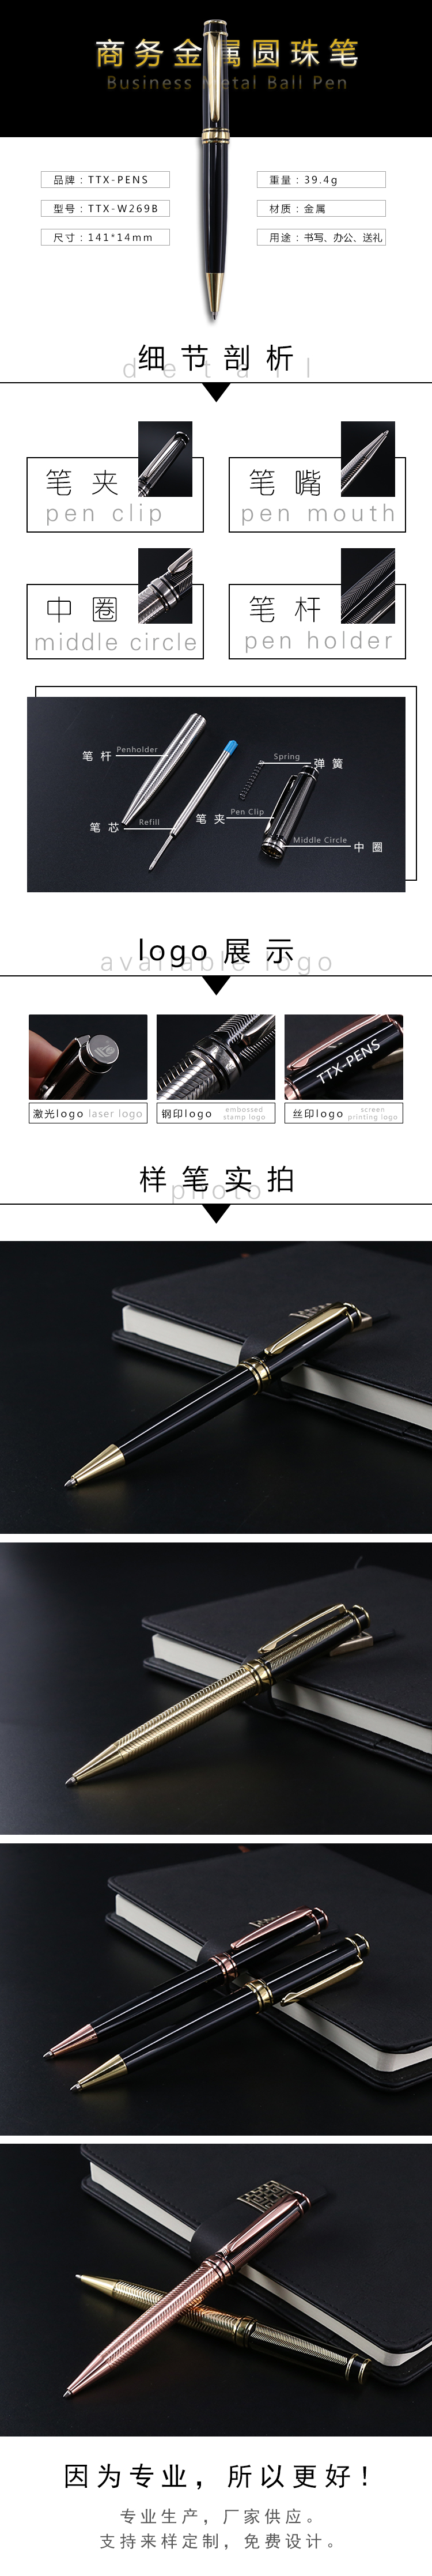 2018 New product promotion metal ballpoint pen gold personalized logo